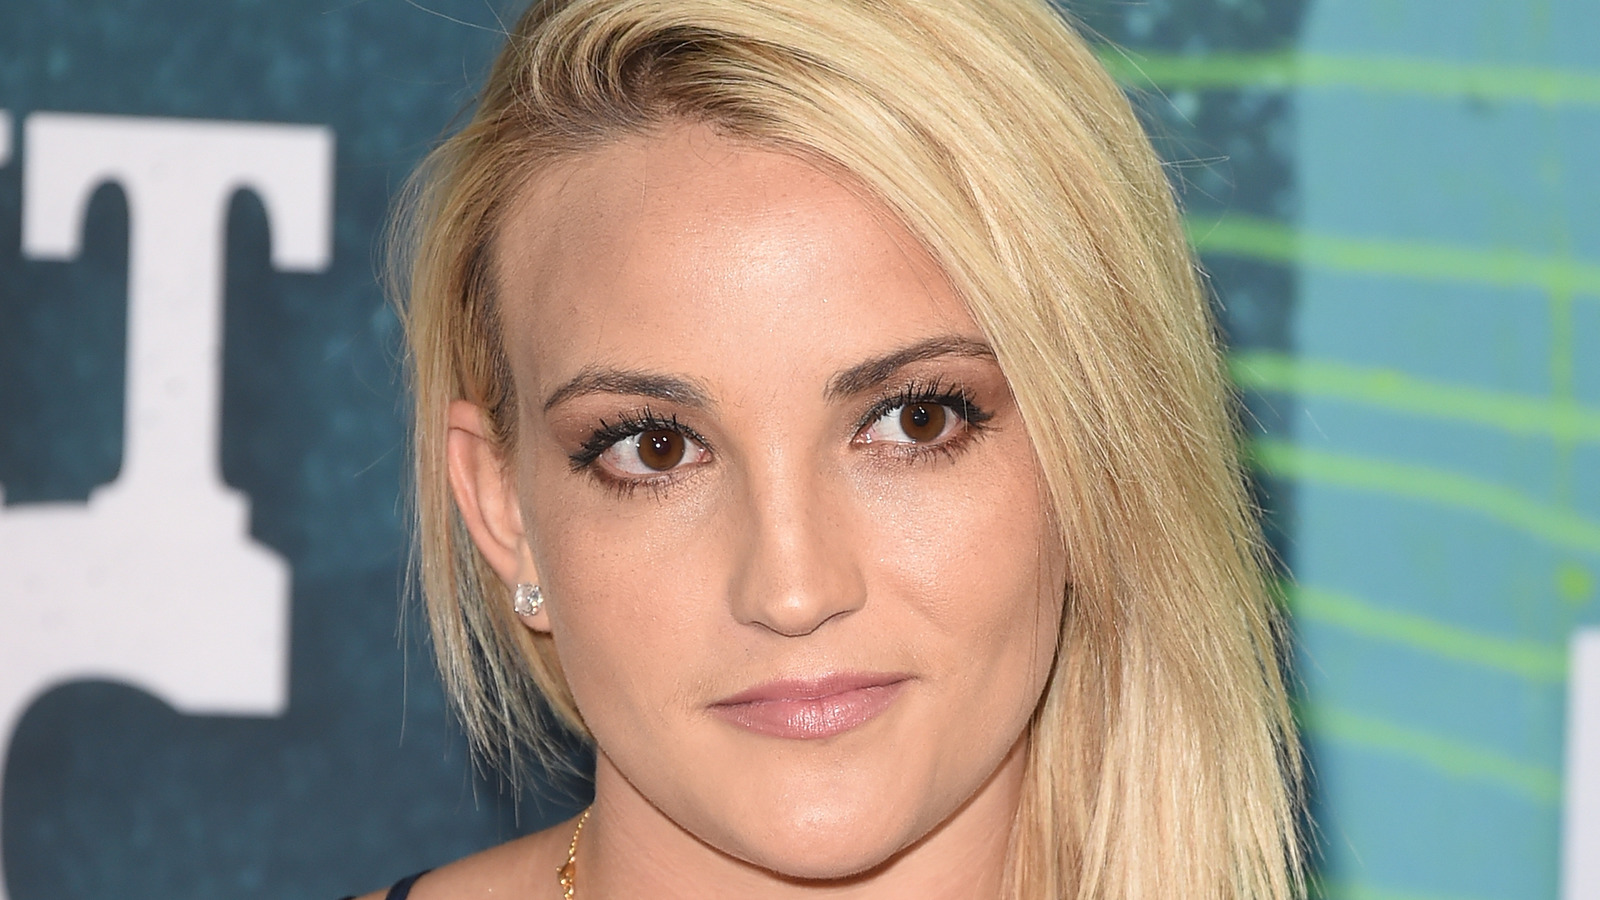 Why Jamie Lynn Spears Is Raising Eyebrows With Her Latest Zoom Appearance